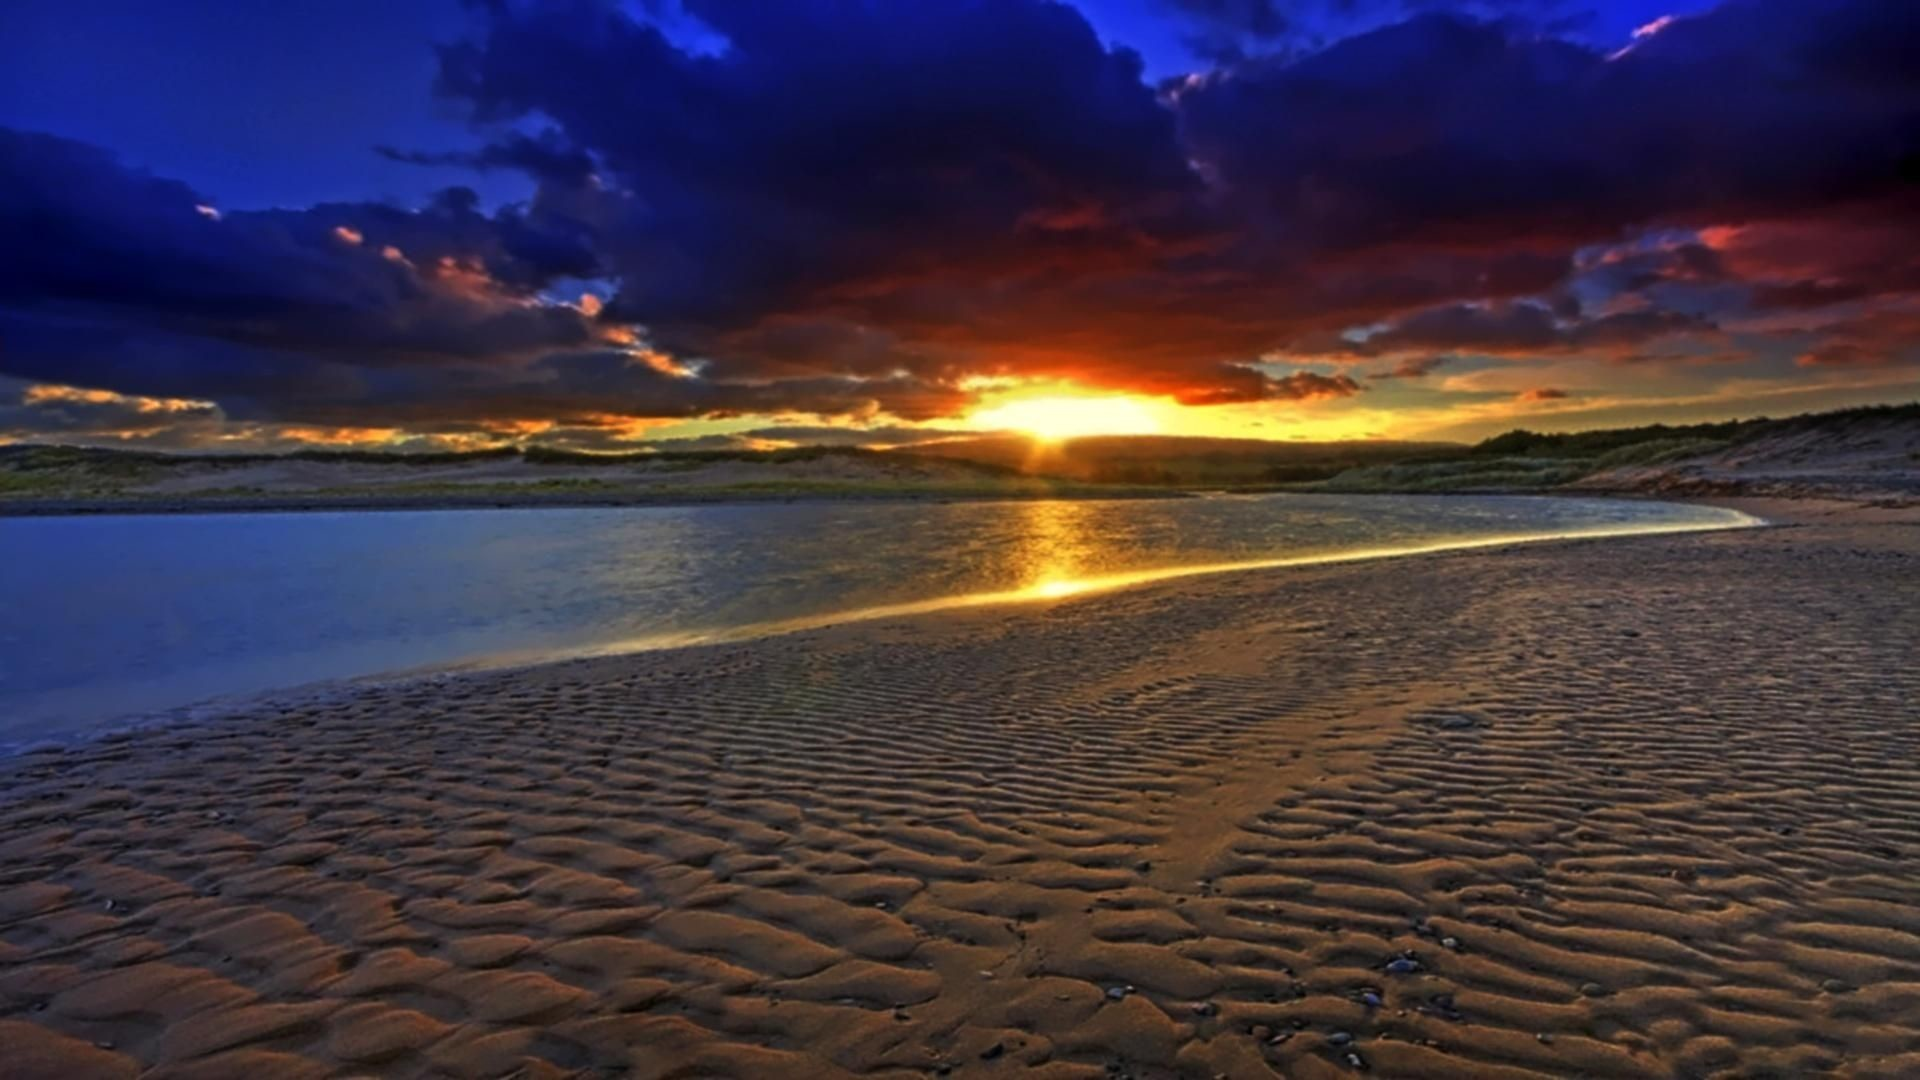 Res: 1920x1080, Res: , Beautiful Ocean Sunsets Hd Background Wallpaper 16 ...